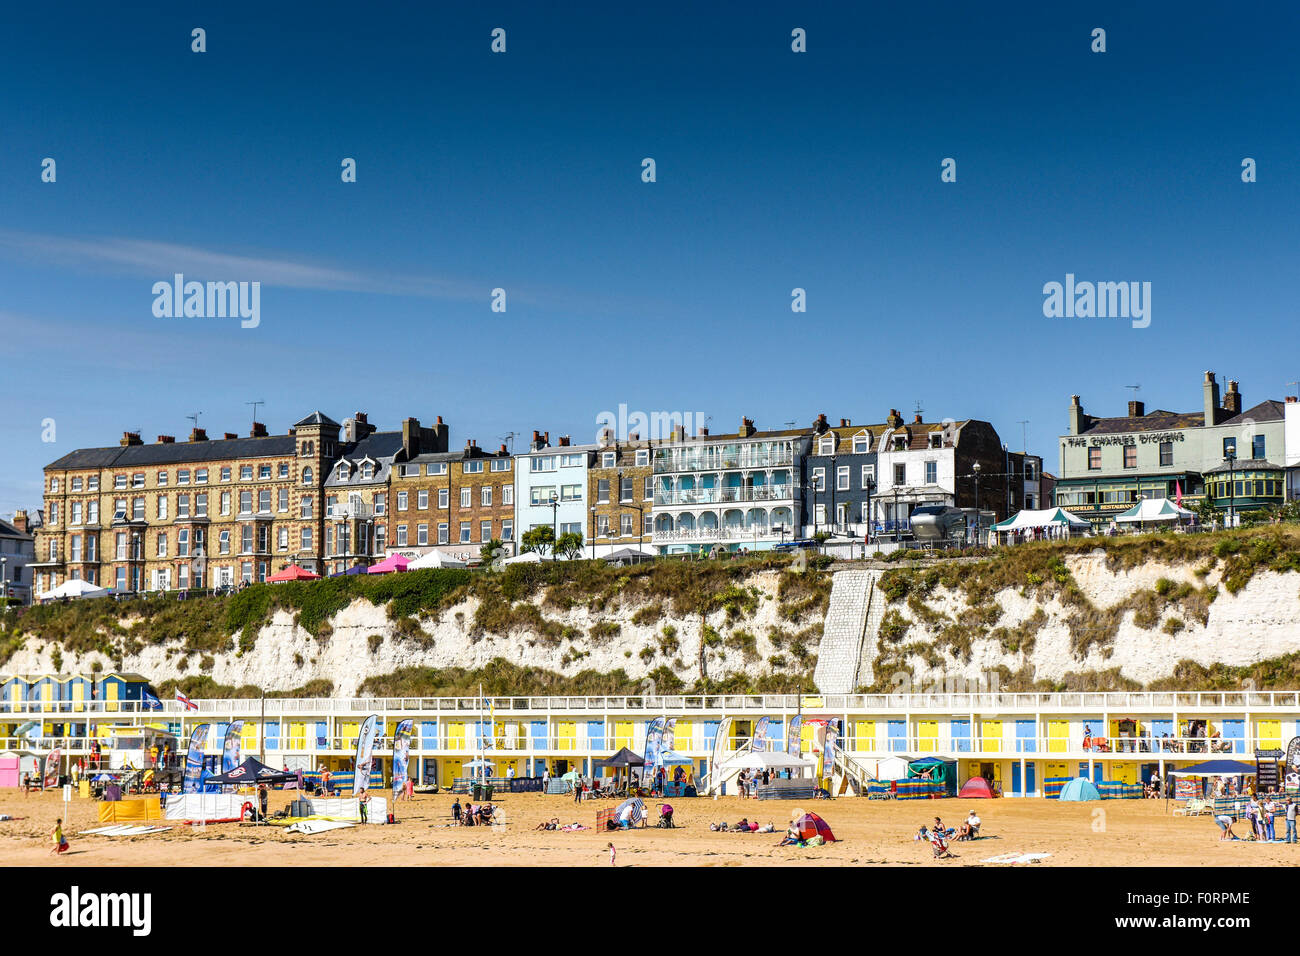 The seafront properties and beach at Viking Bay in Broadstairs, Kent. - Stock Image